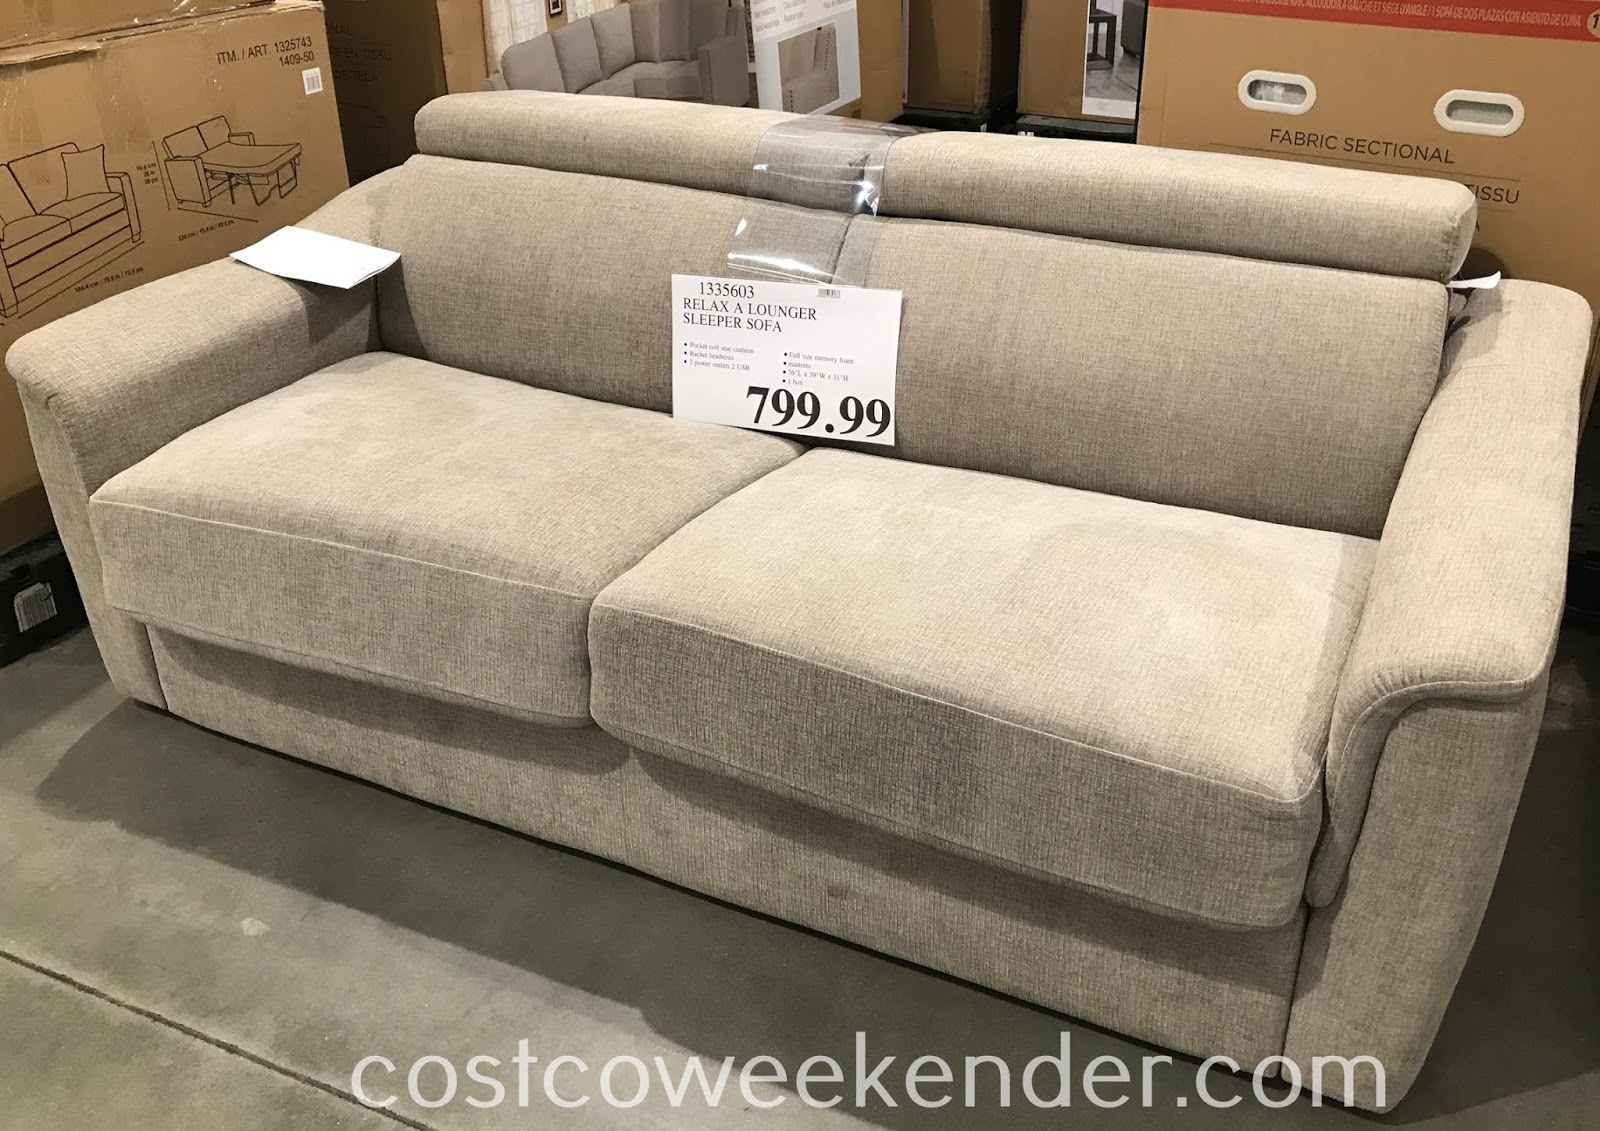 Give guests a place to sleep on with the Relax A Lounger Fabric Sleeper Sofa